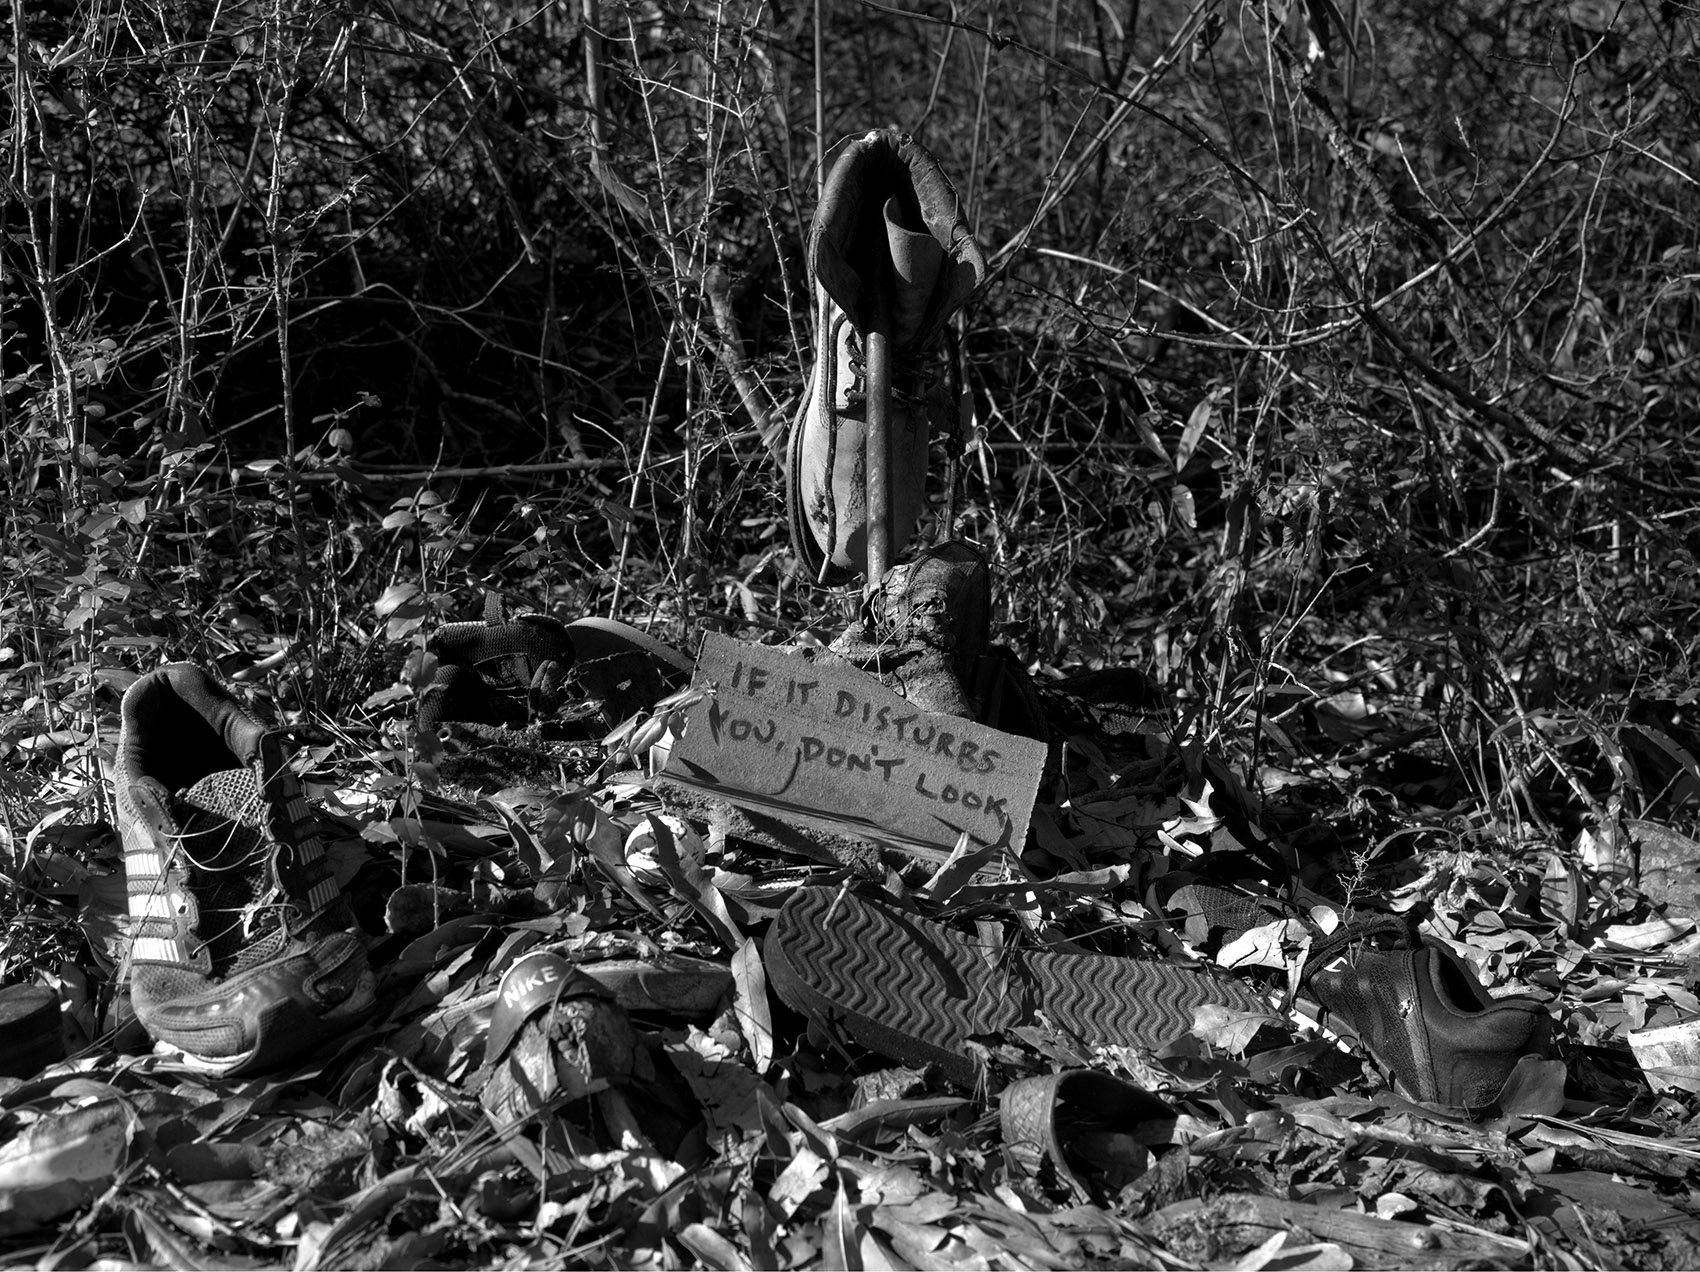 "black-and-white photo of discarded shoes with a sign that reads ""If it disturbs you, don't look"""